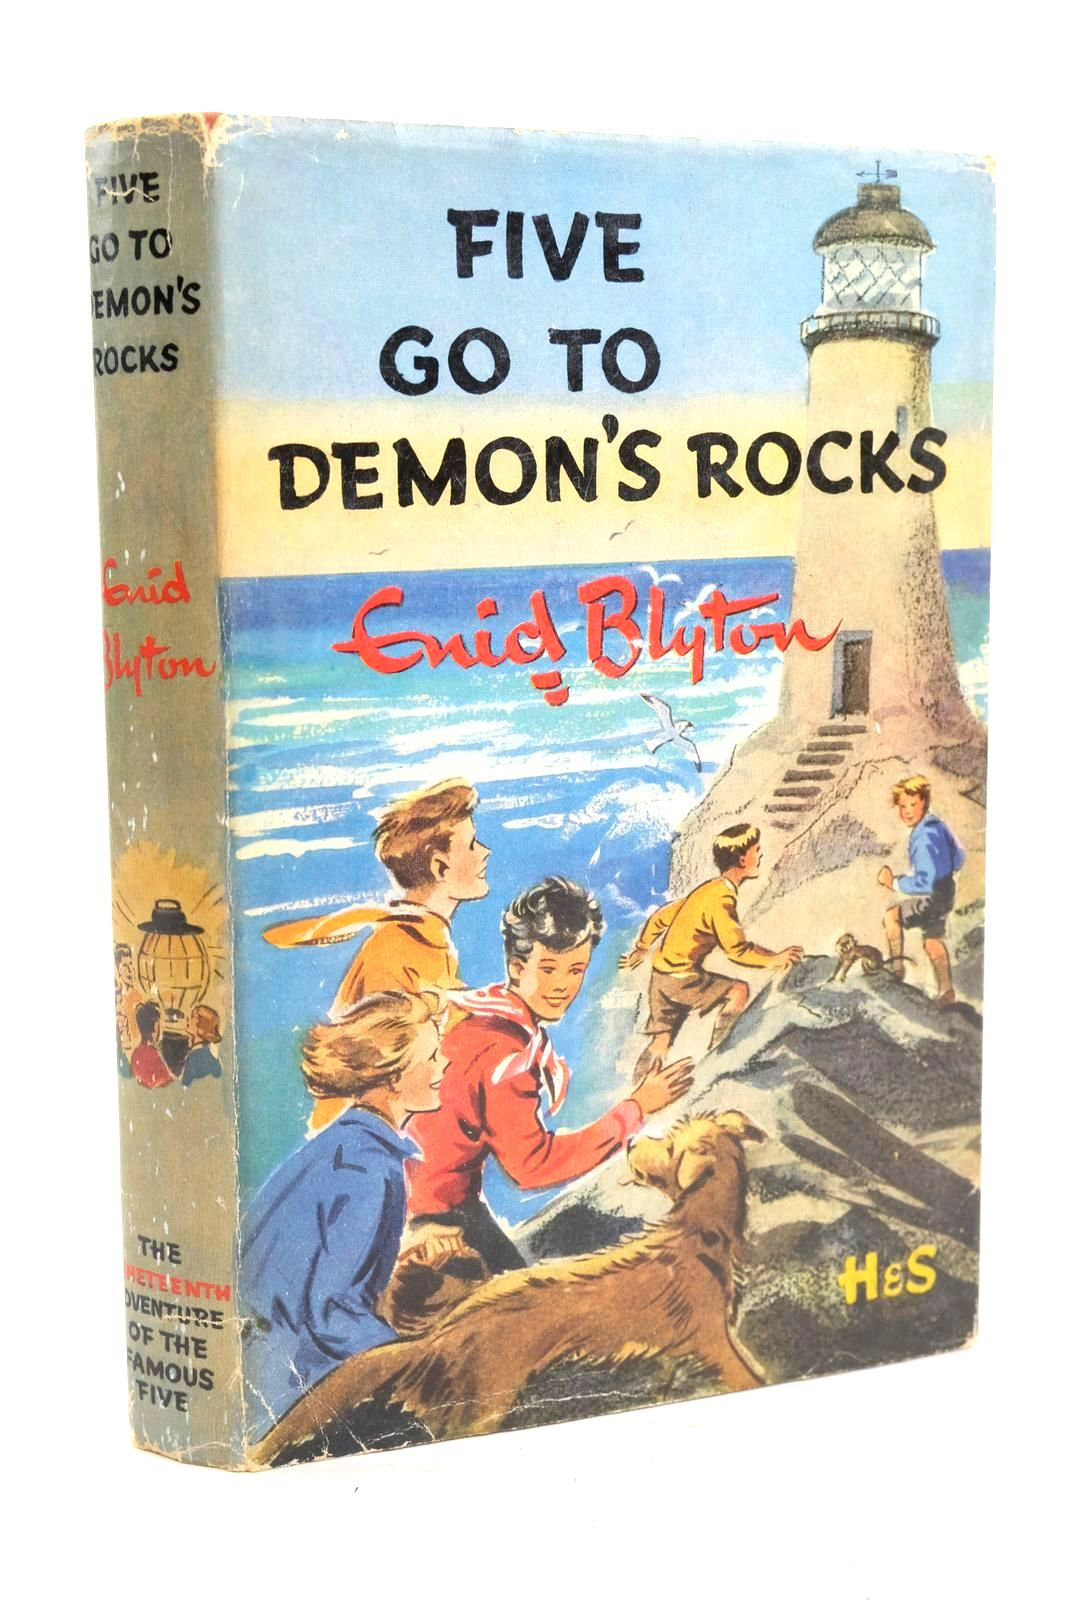 Photo of FIVE GO TO DEMON'S ROCKS written by Blyton, Enid illustrated by Soper, Eileen published by Hodder & Stoughton (STOCK CODE: 1319952)  for sale by Stella & Rose's Books